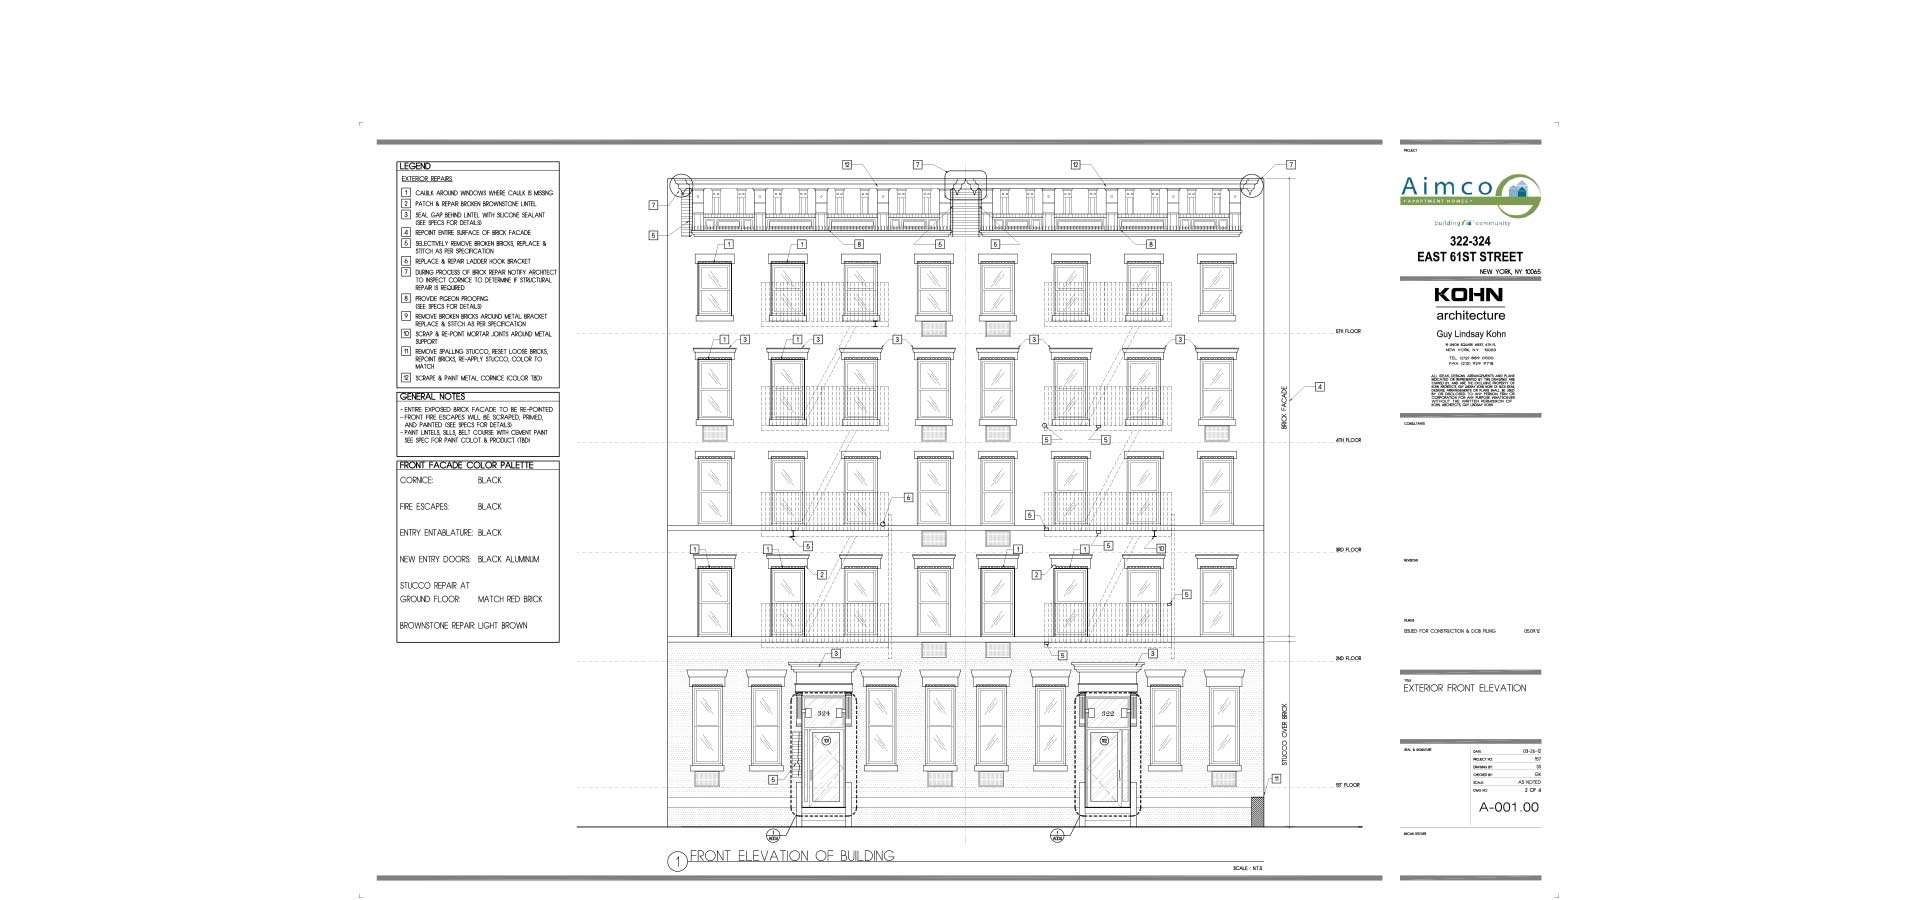 nyc department of buildings architectural blueprint for apartment building architecture